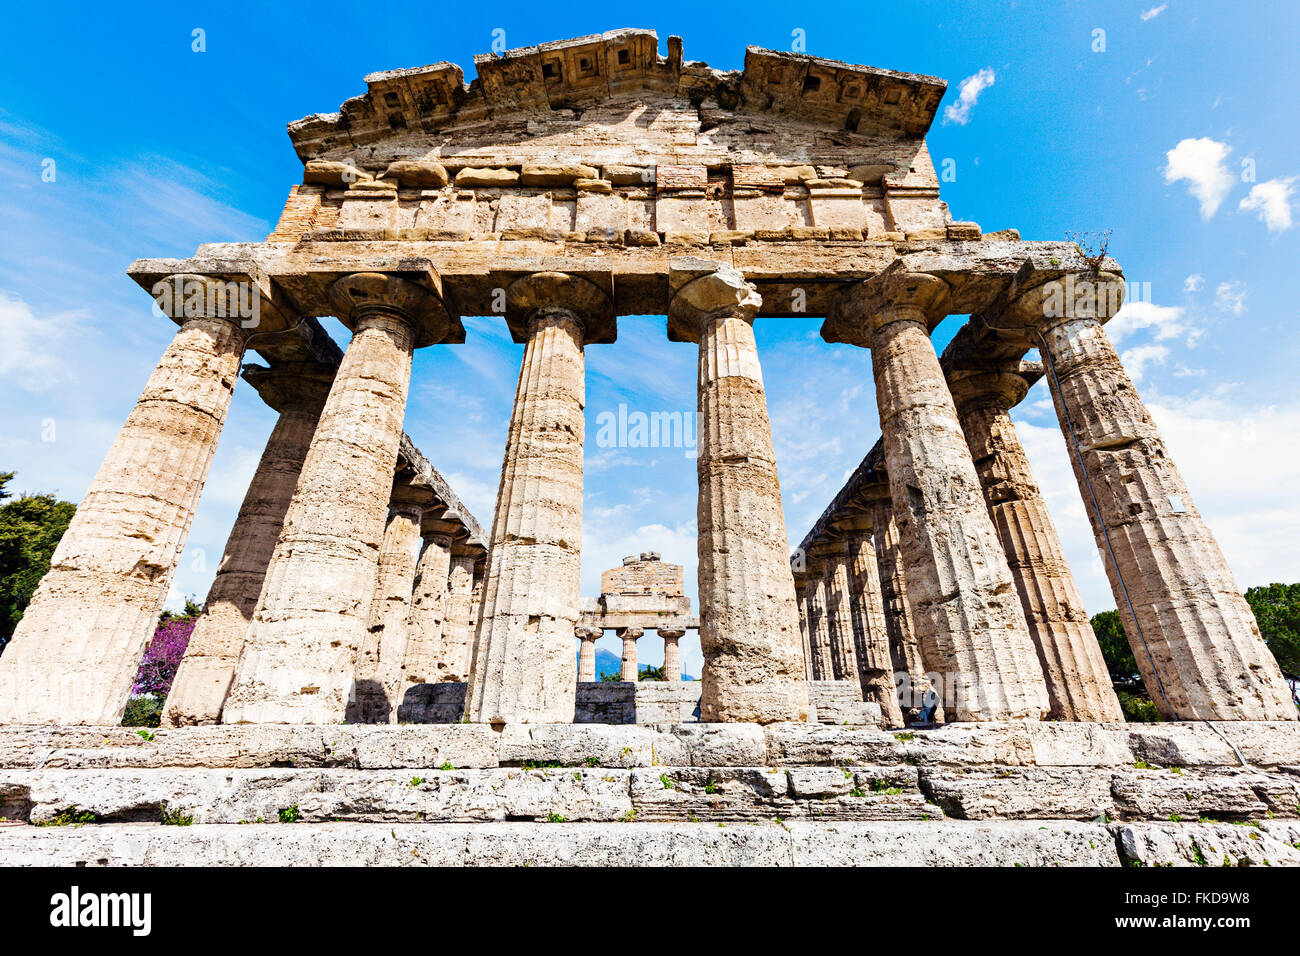 Old architectural columns of Paestum ruins - Stock Image